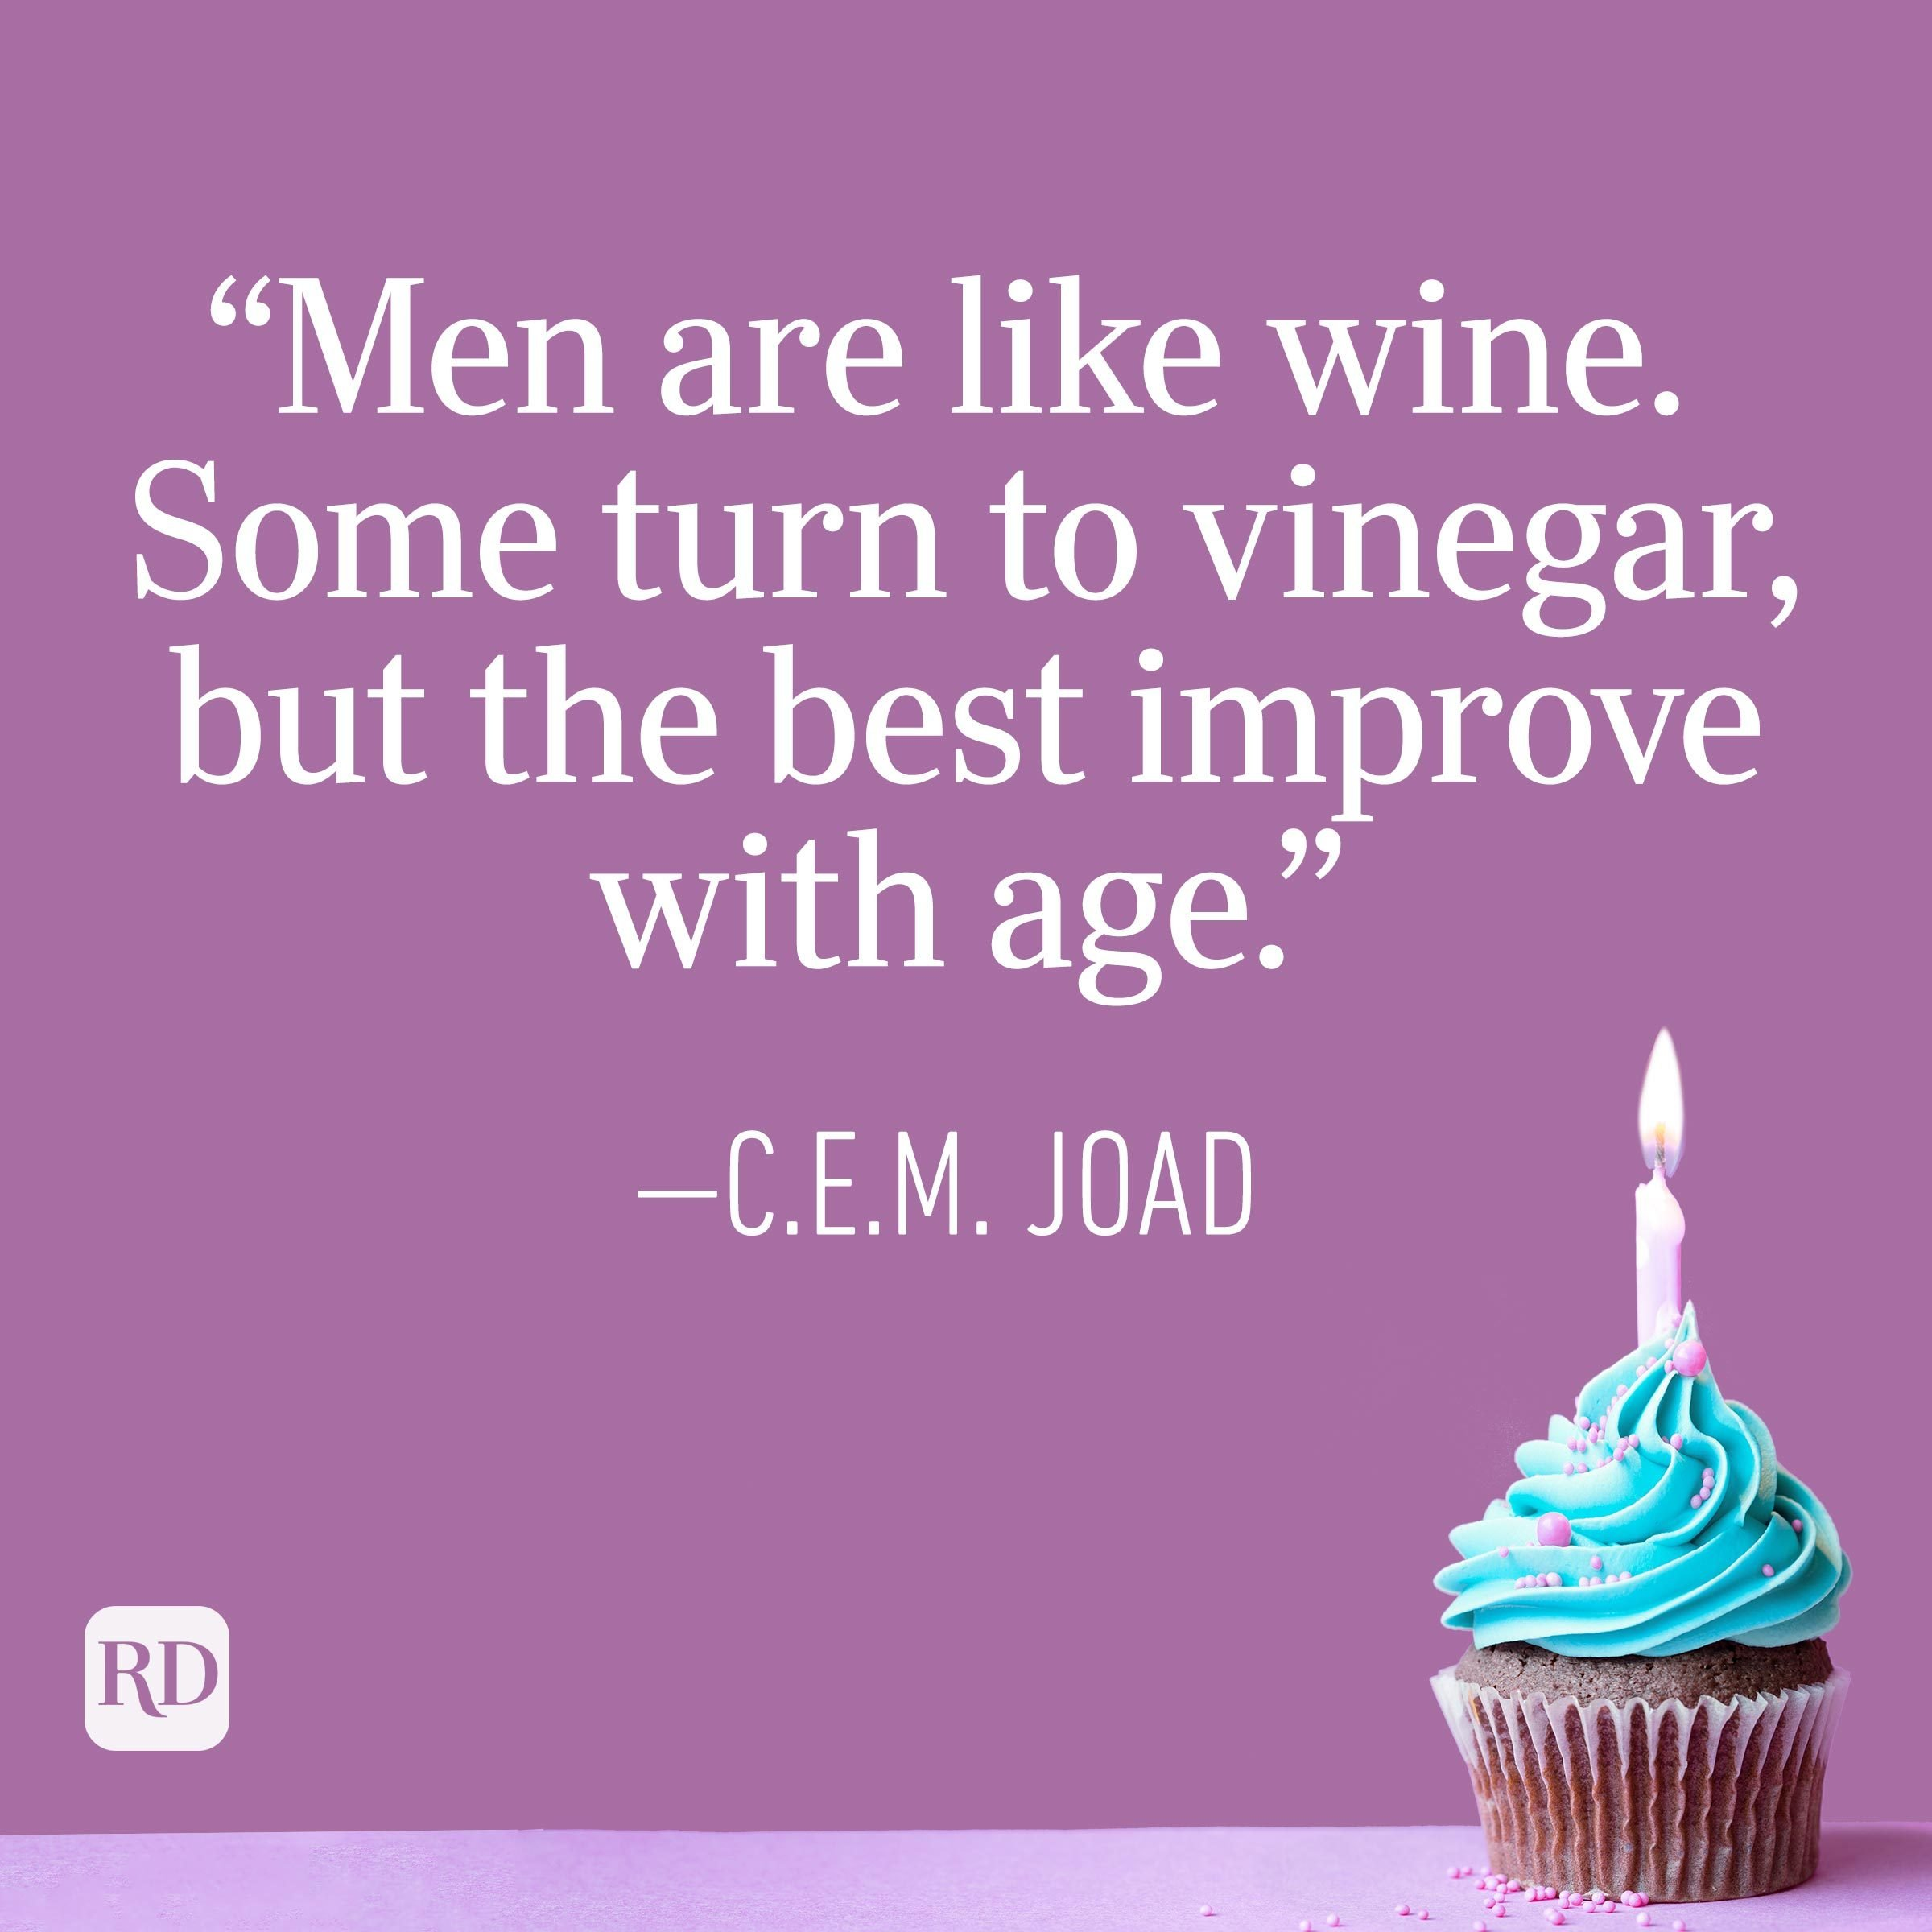 """""""Men are like wine. Some turn to vinegar, but the best improve with age."""" —C.E.M. Joad"""